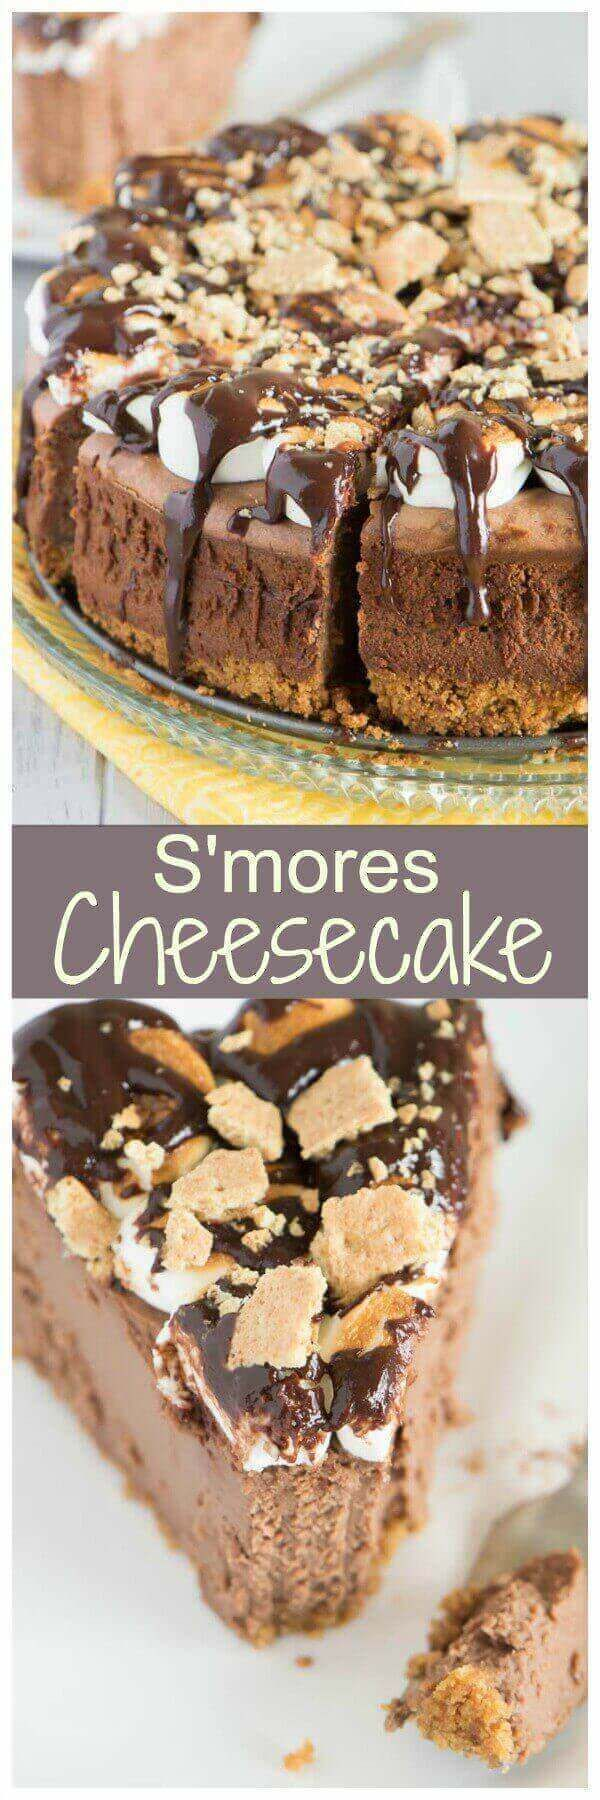 This rich and decadent smores cheesecake features graham crackers crumbs, melty chocolate, and toasted marshmallows. Enjoy!